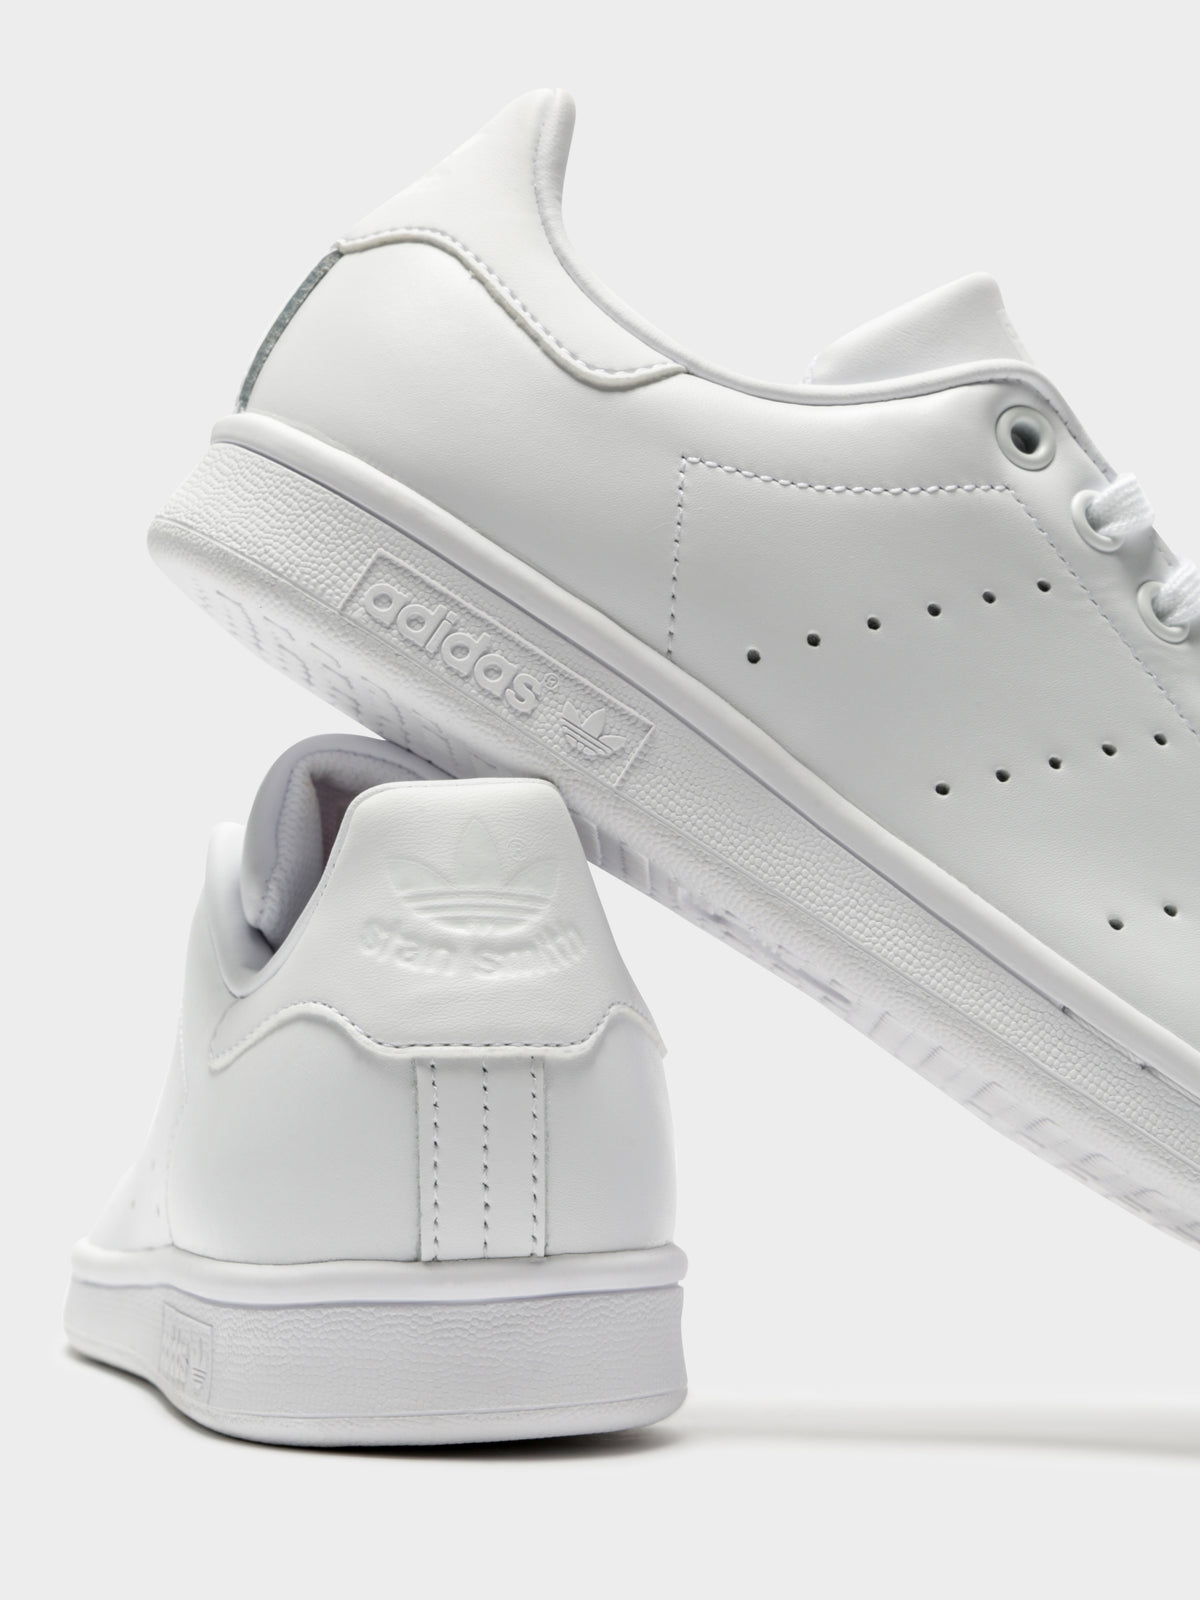 Unisex Stan Smith Sneakers in White